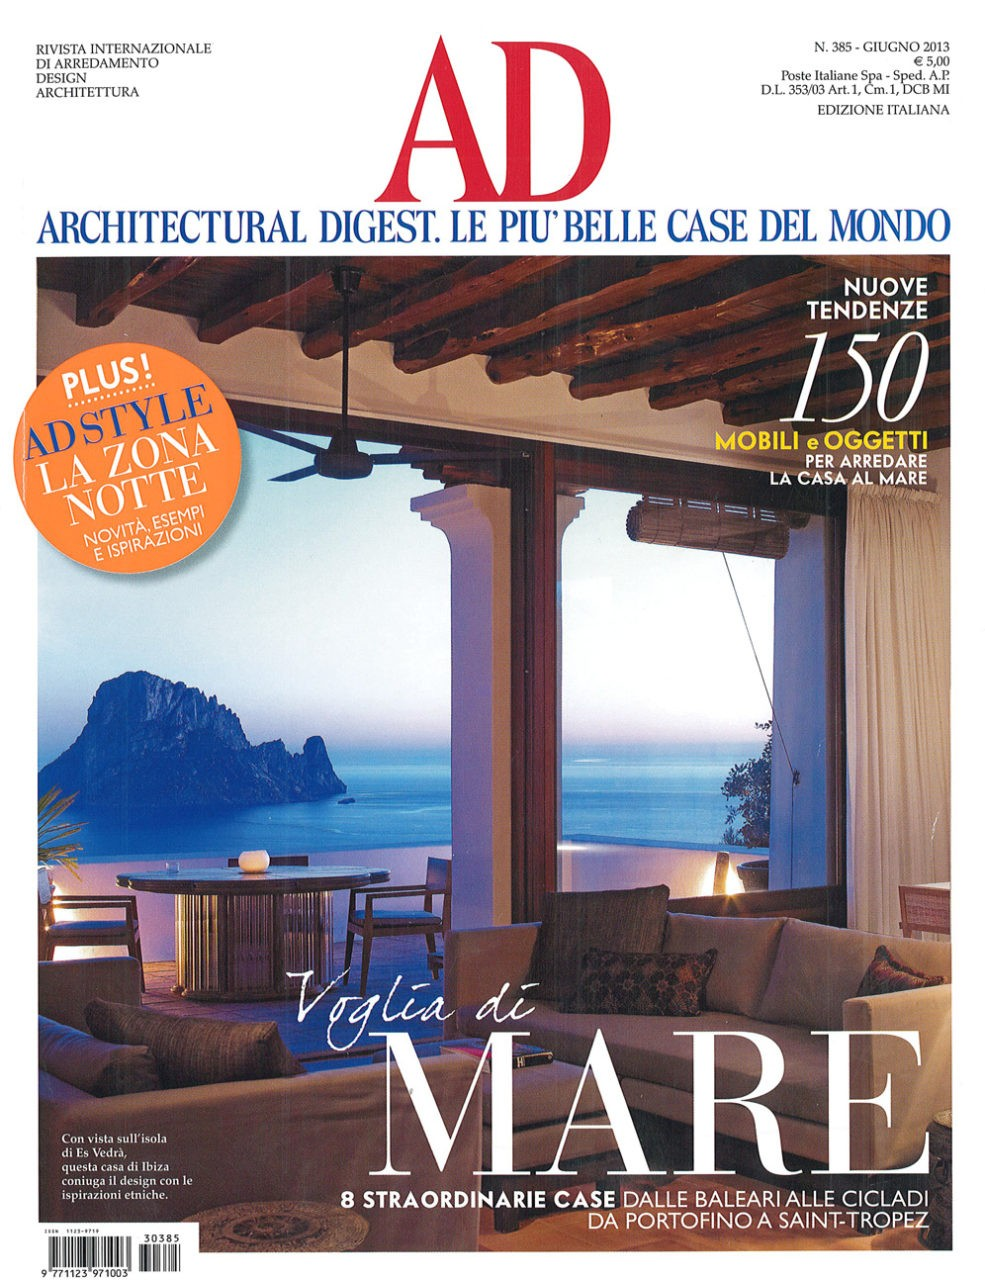 http://www.saota.com/wp-content/uploads/2018/01/2013_June_IT_ArchitecturalDigest_SAOTA_Page_1.jpg